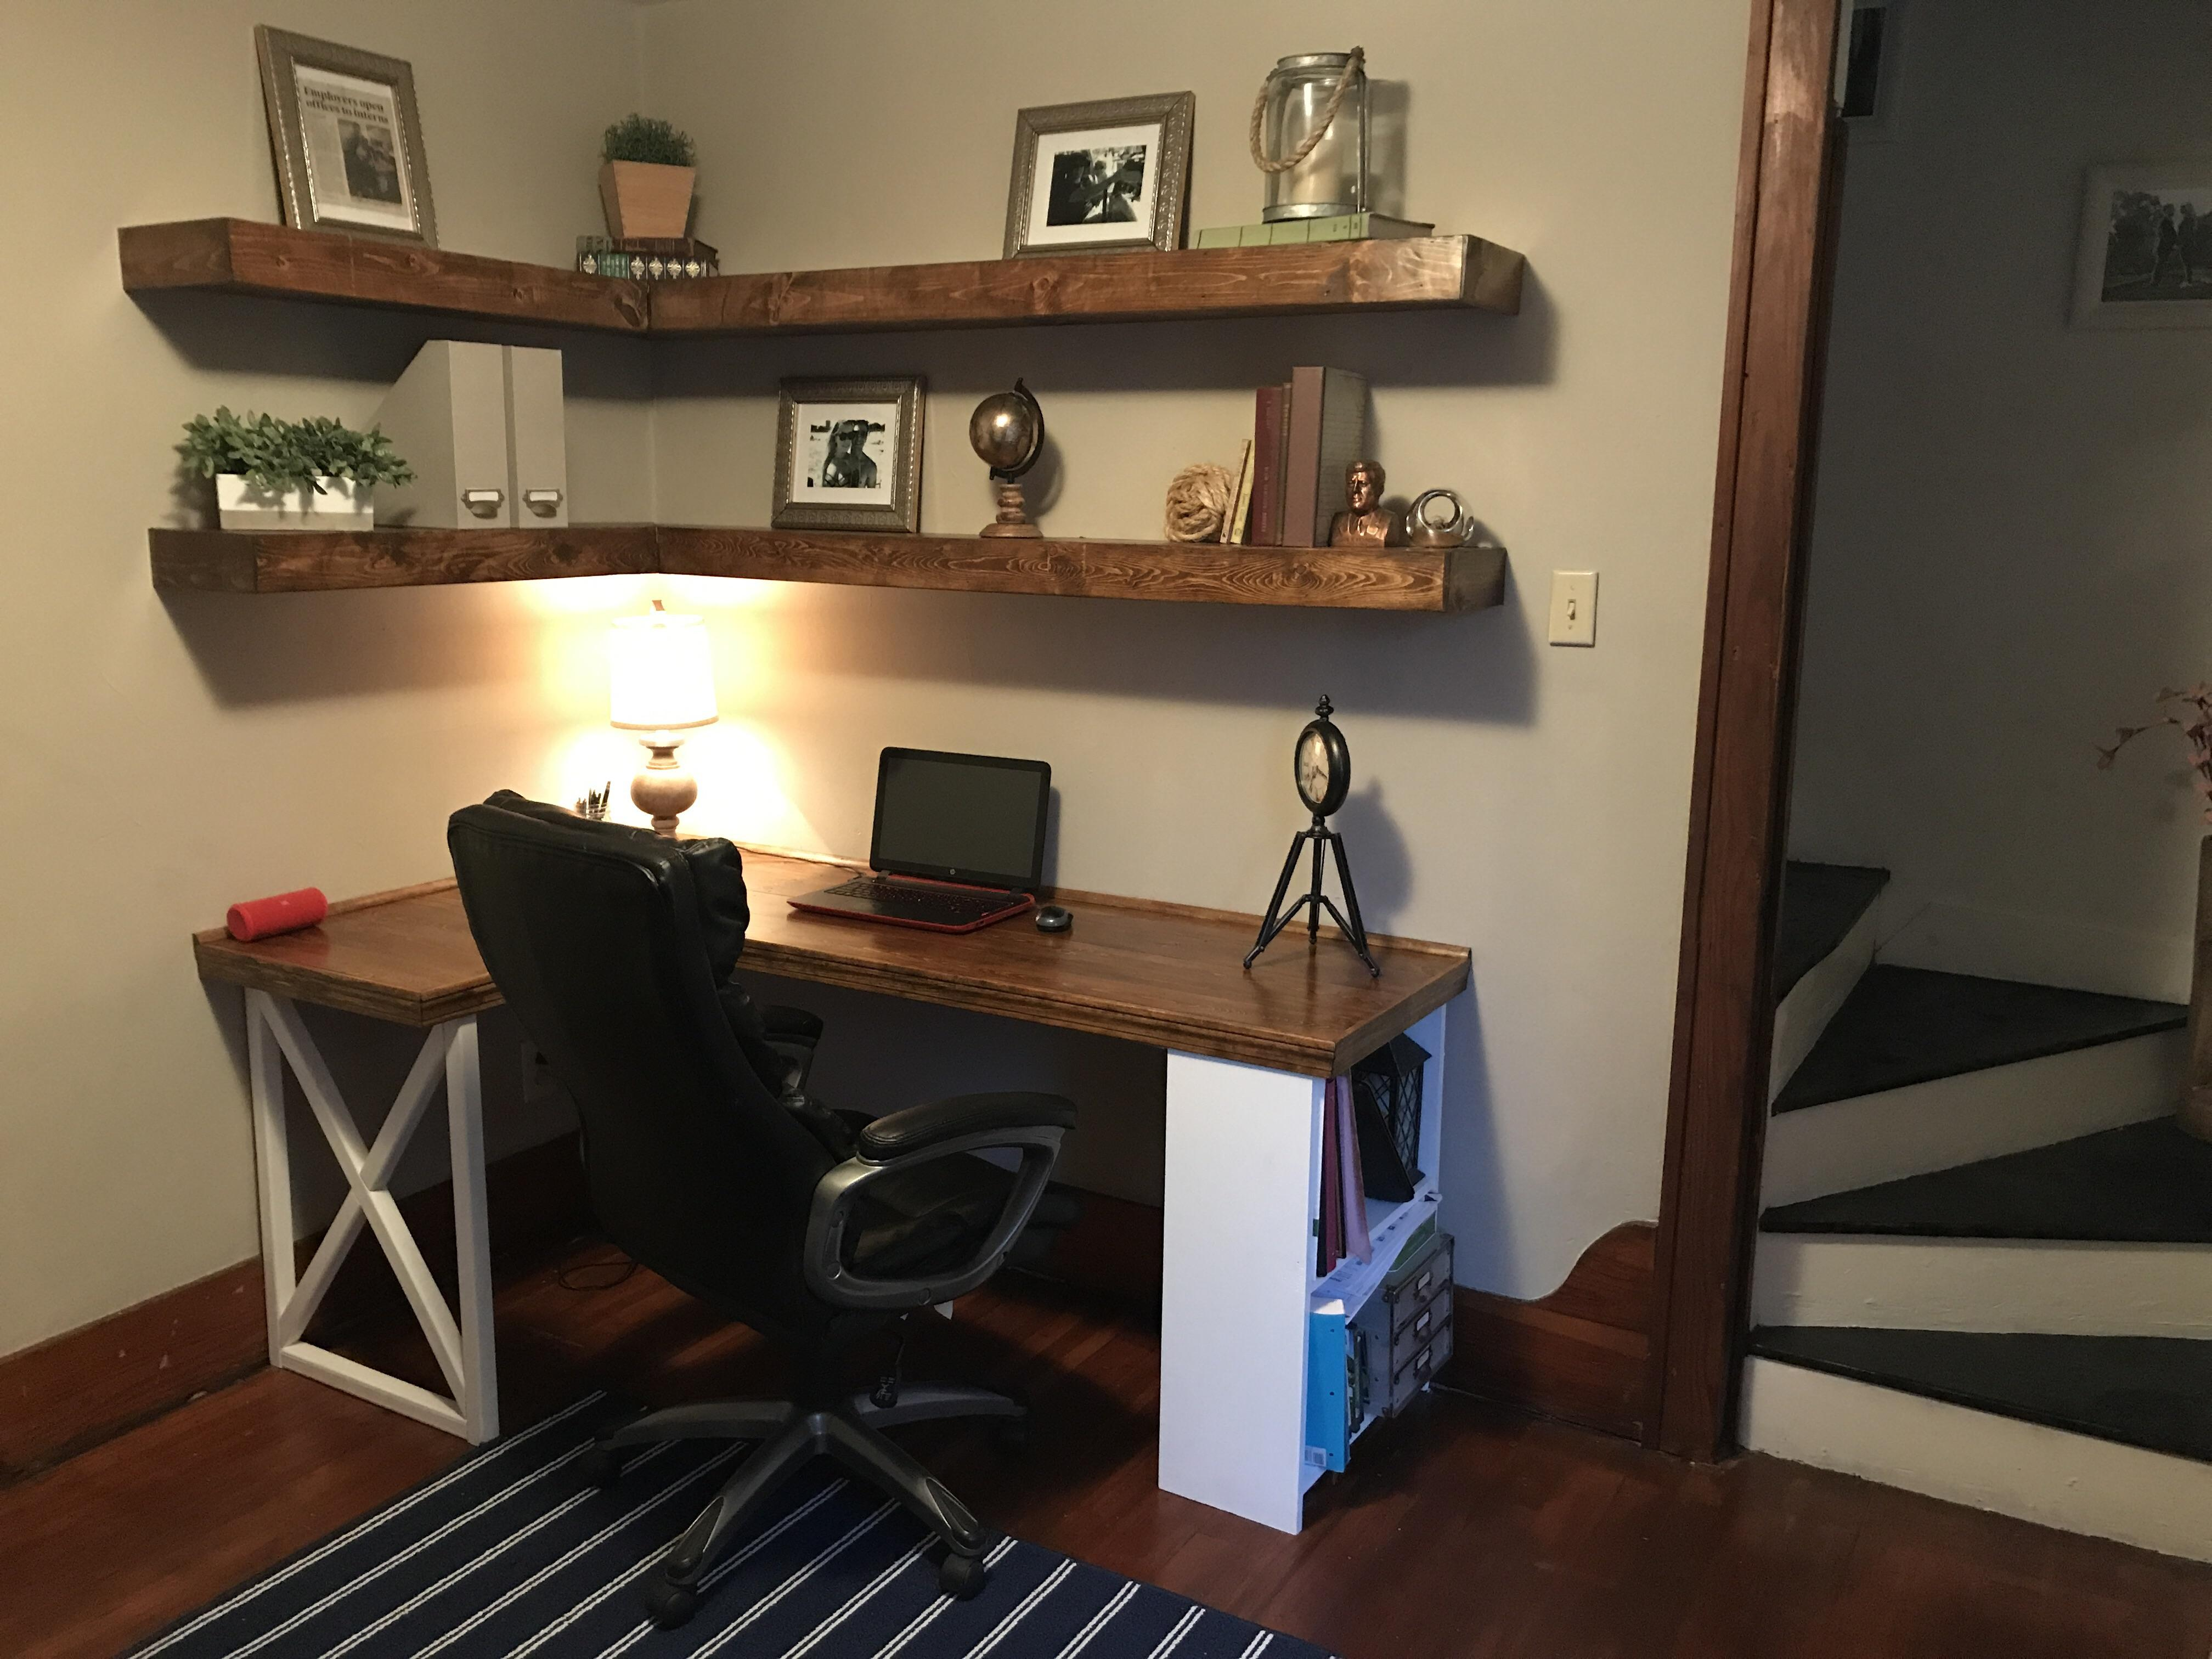 made built desk and floating shelves girlfriend house shelf over spring break thanks for letting borrow the tools workbench kitchen island open glass cabinets round wall wood dark